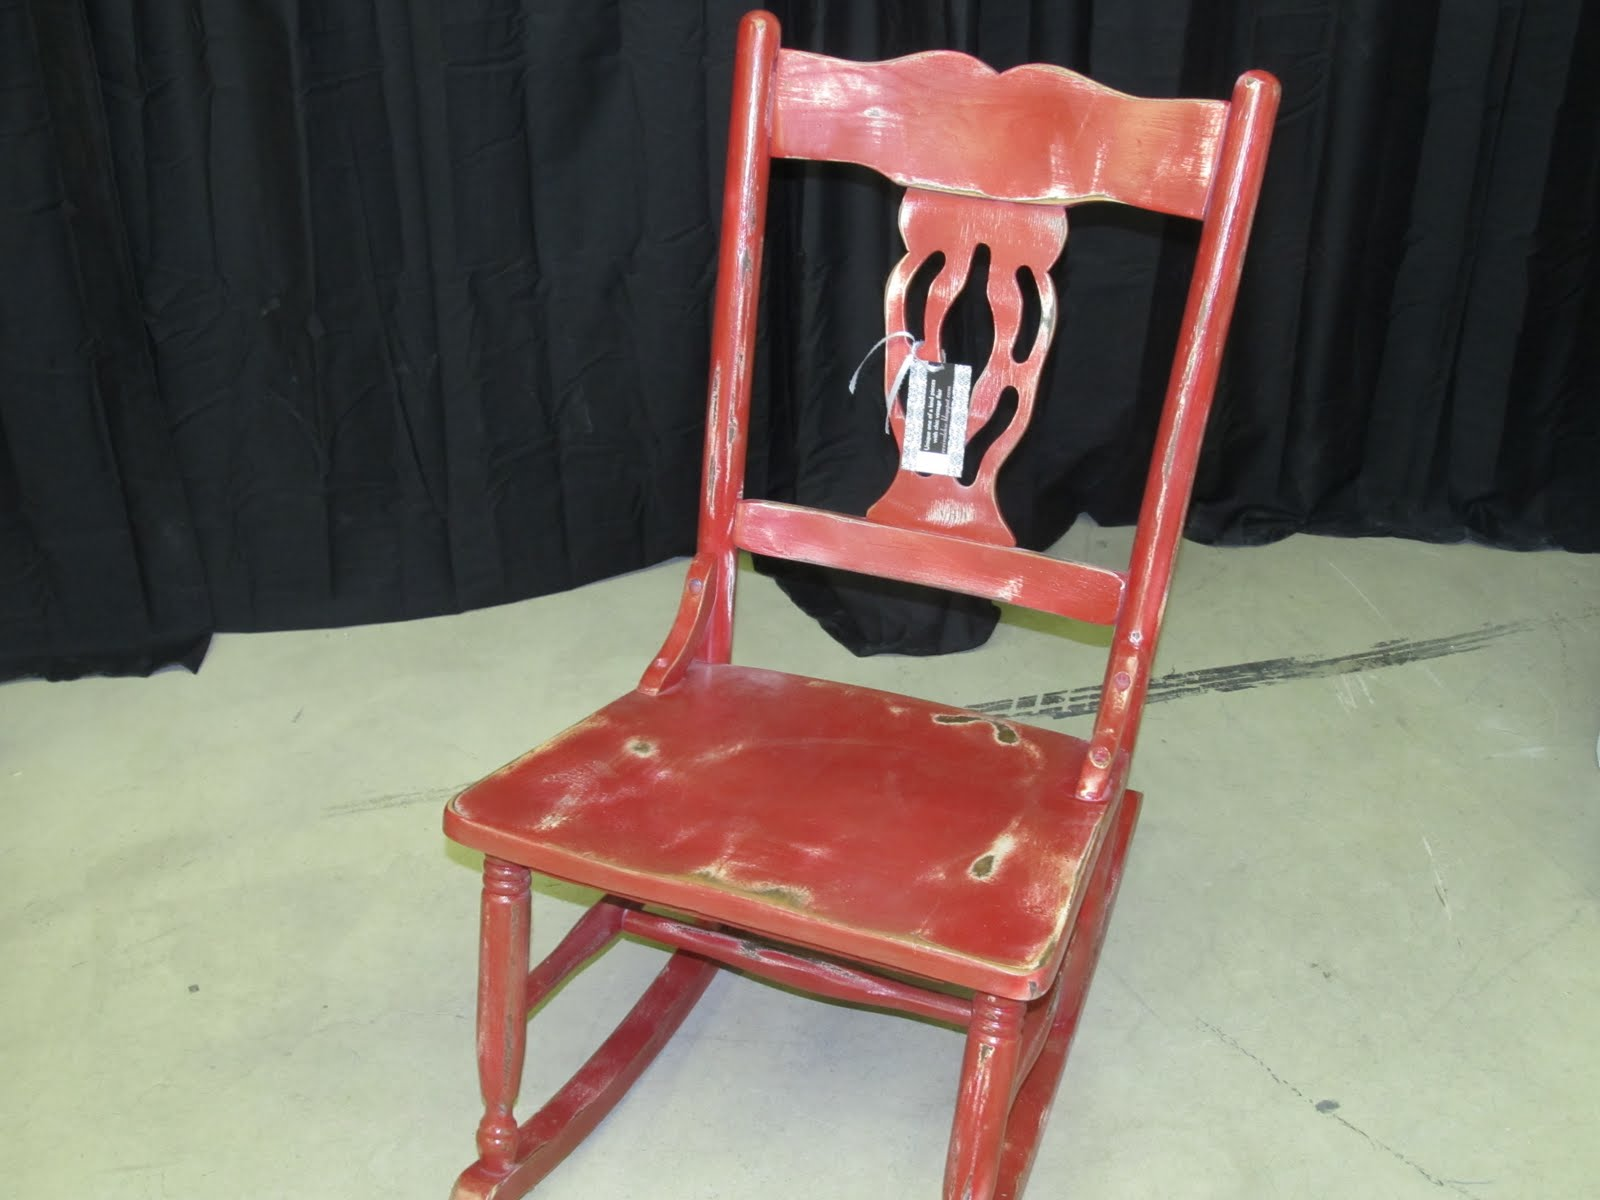 Revival Chic Boutique Distressed Red Rocking Chair $58